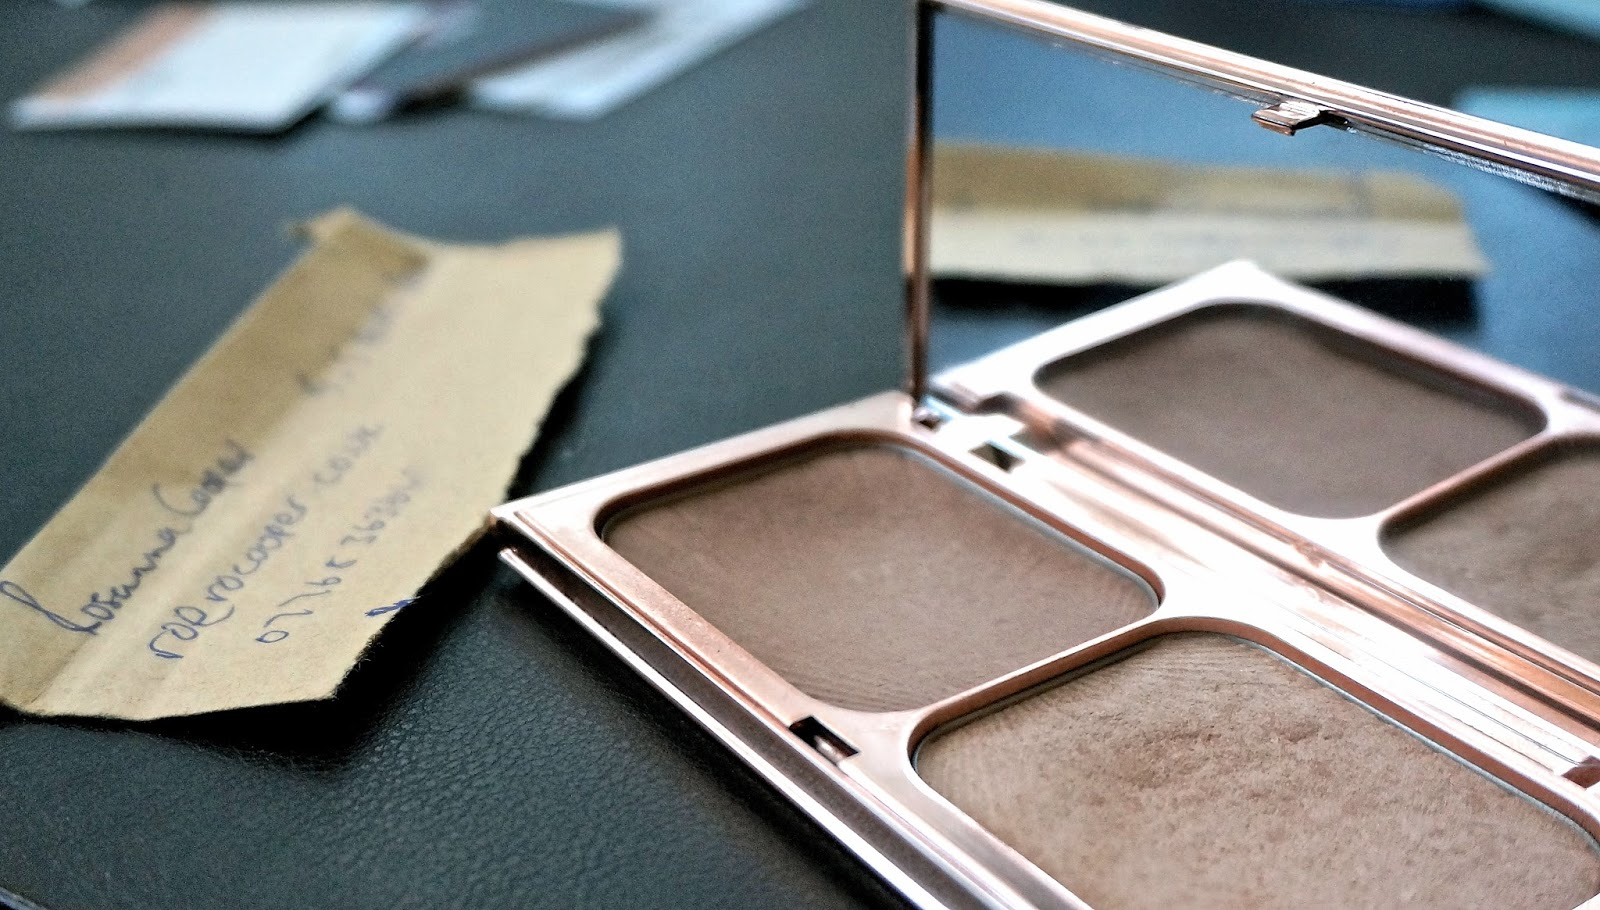 bronzer eyeshadow Charlotte Tilbury Filmstar Bronze&Glow makeup Lexie Blush www.lexieblush.co.uk